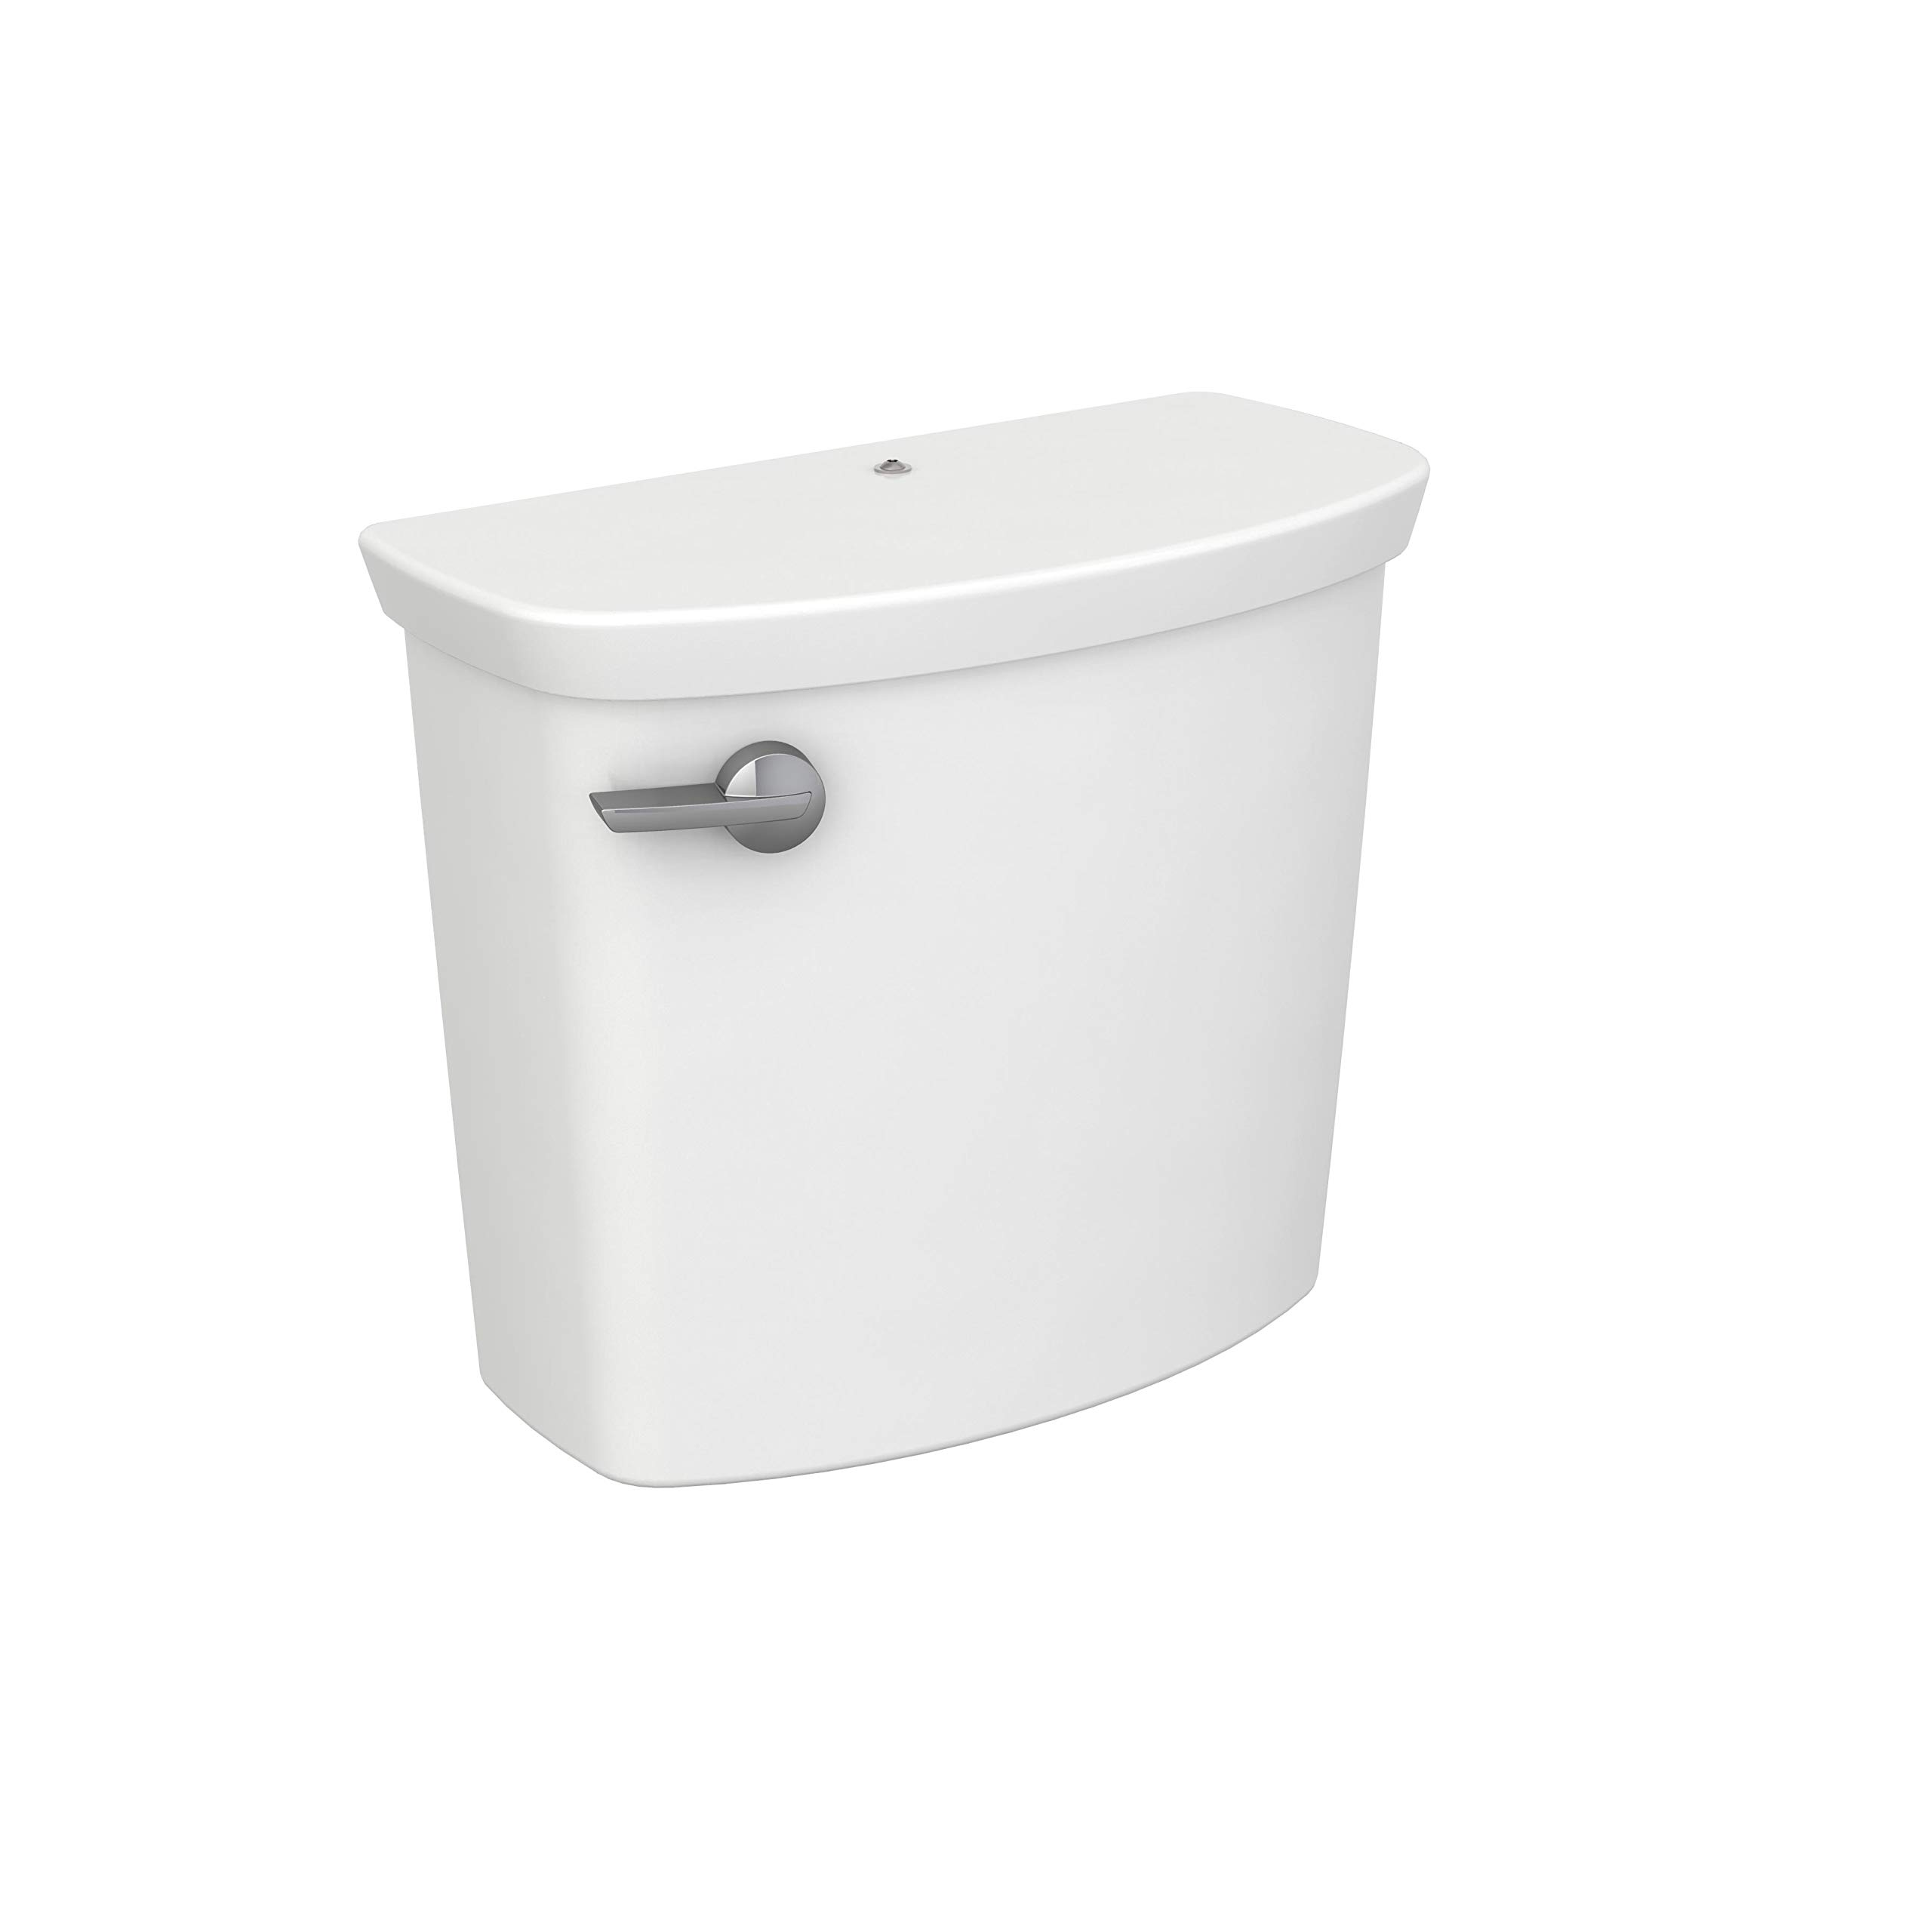 American Standard 4385A187.020 Yorkville VorMax Toilet Tank with Right-Hand Trip Lever White